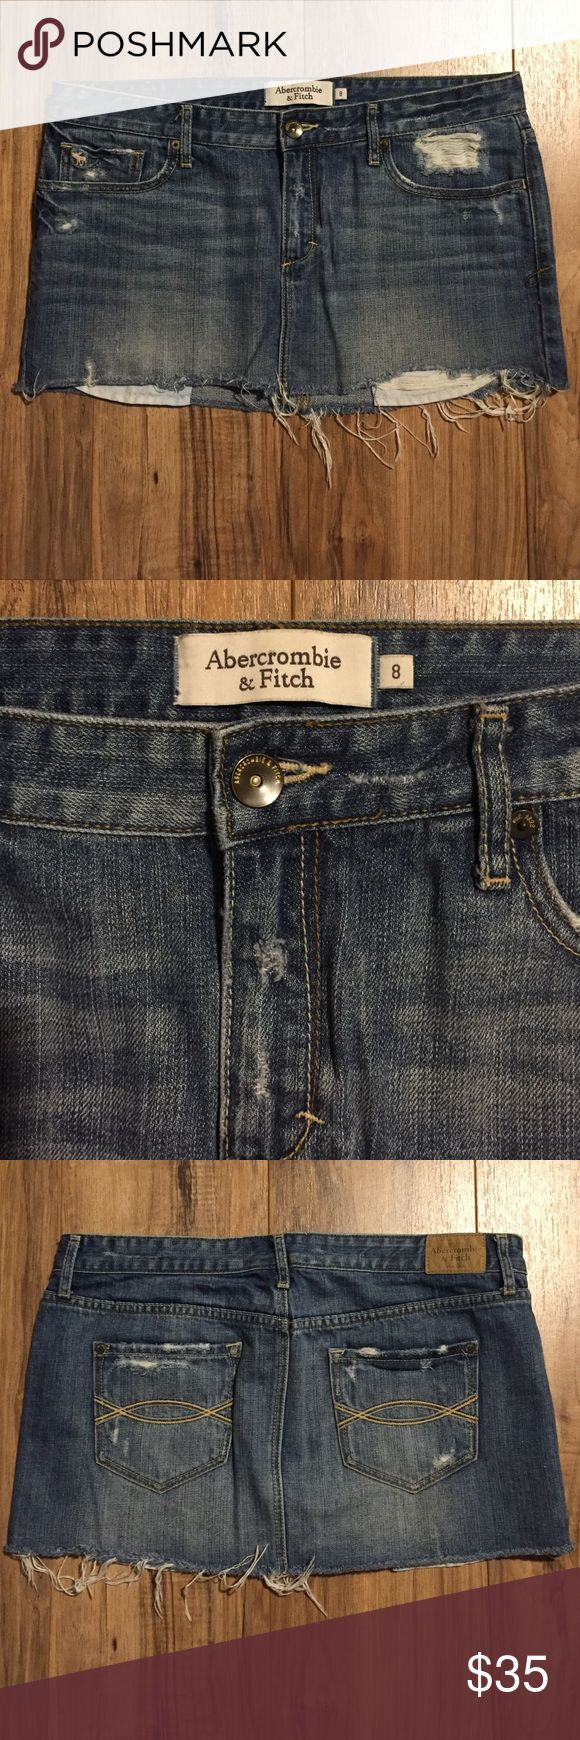 Abercrombie and Fitch denim skirt Very vintage skirt. Purchased it more than a decade ago, but still holds up well and is very fun and flirty. Pockets hand out the front at the bottom to give it and edgy distressed look Abercrombie & Fitch Skirts Mini